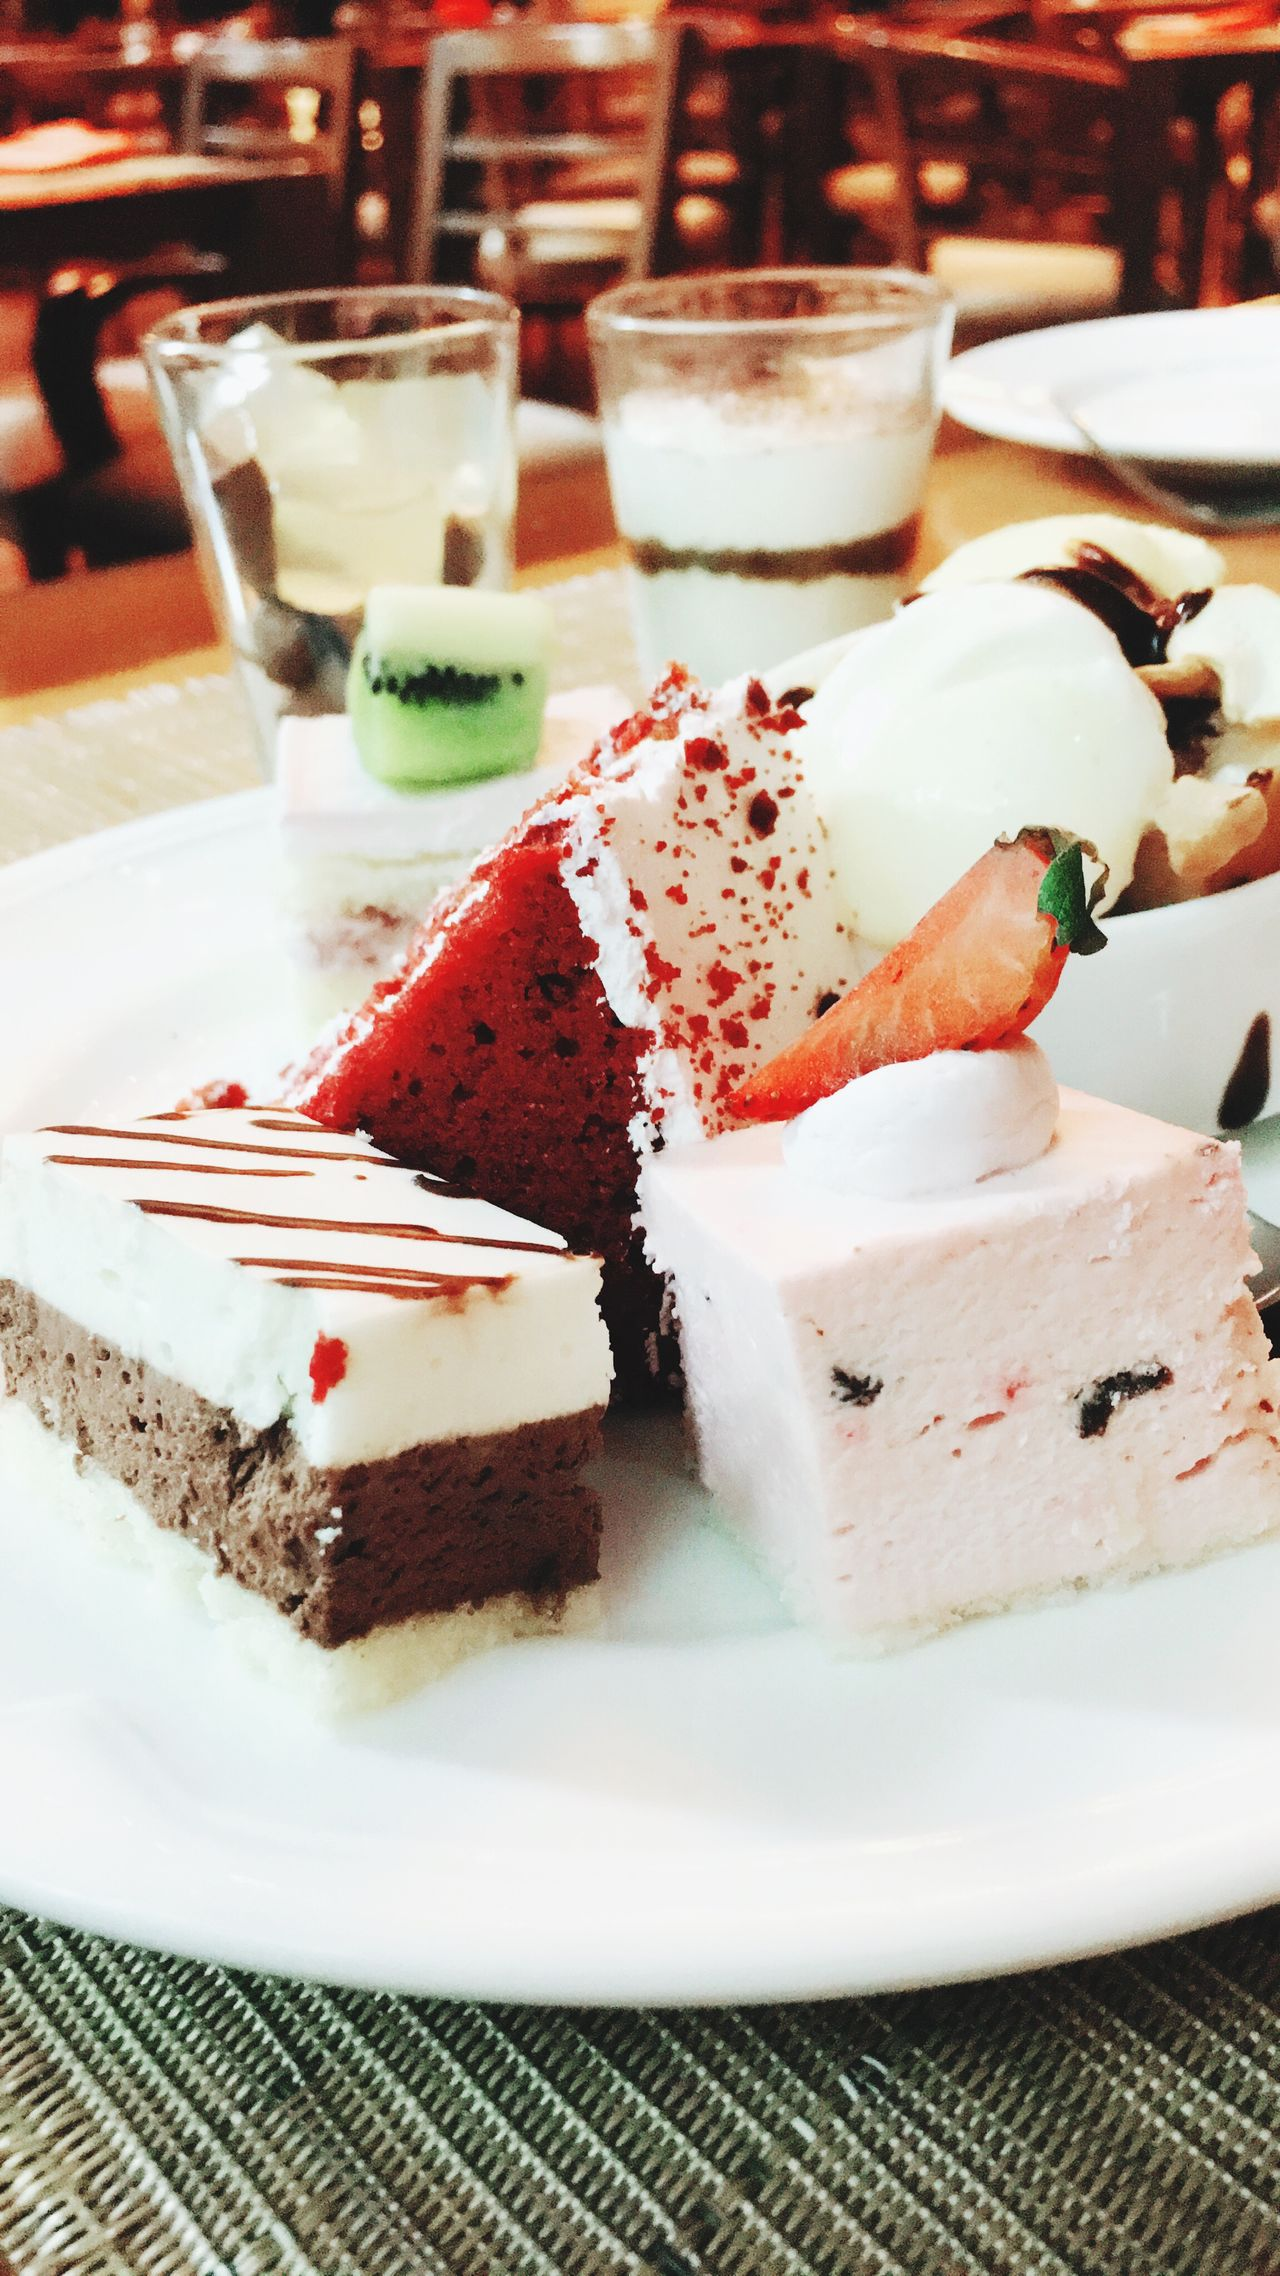 Desserts Dessert Indulgence Sweet Food Temptation Ready-to-eat Food And Drink Freshness Food Close-up Table Serving Size Still Life Unhealthy Eating Dessert Topping Slice Of Cake First Eyeem Photo